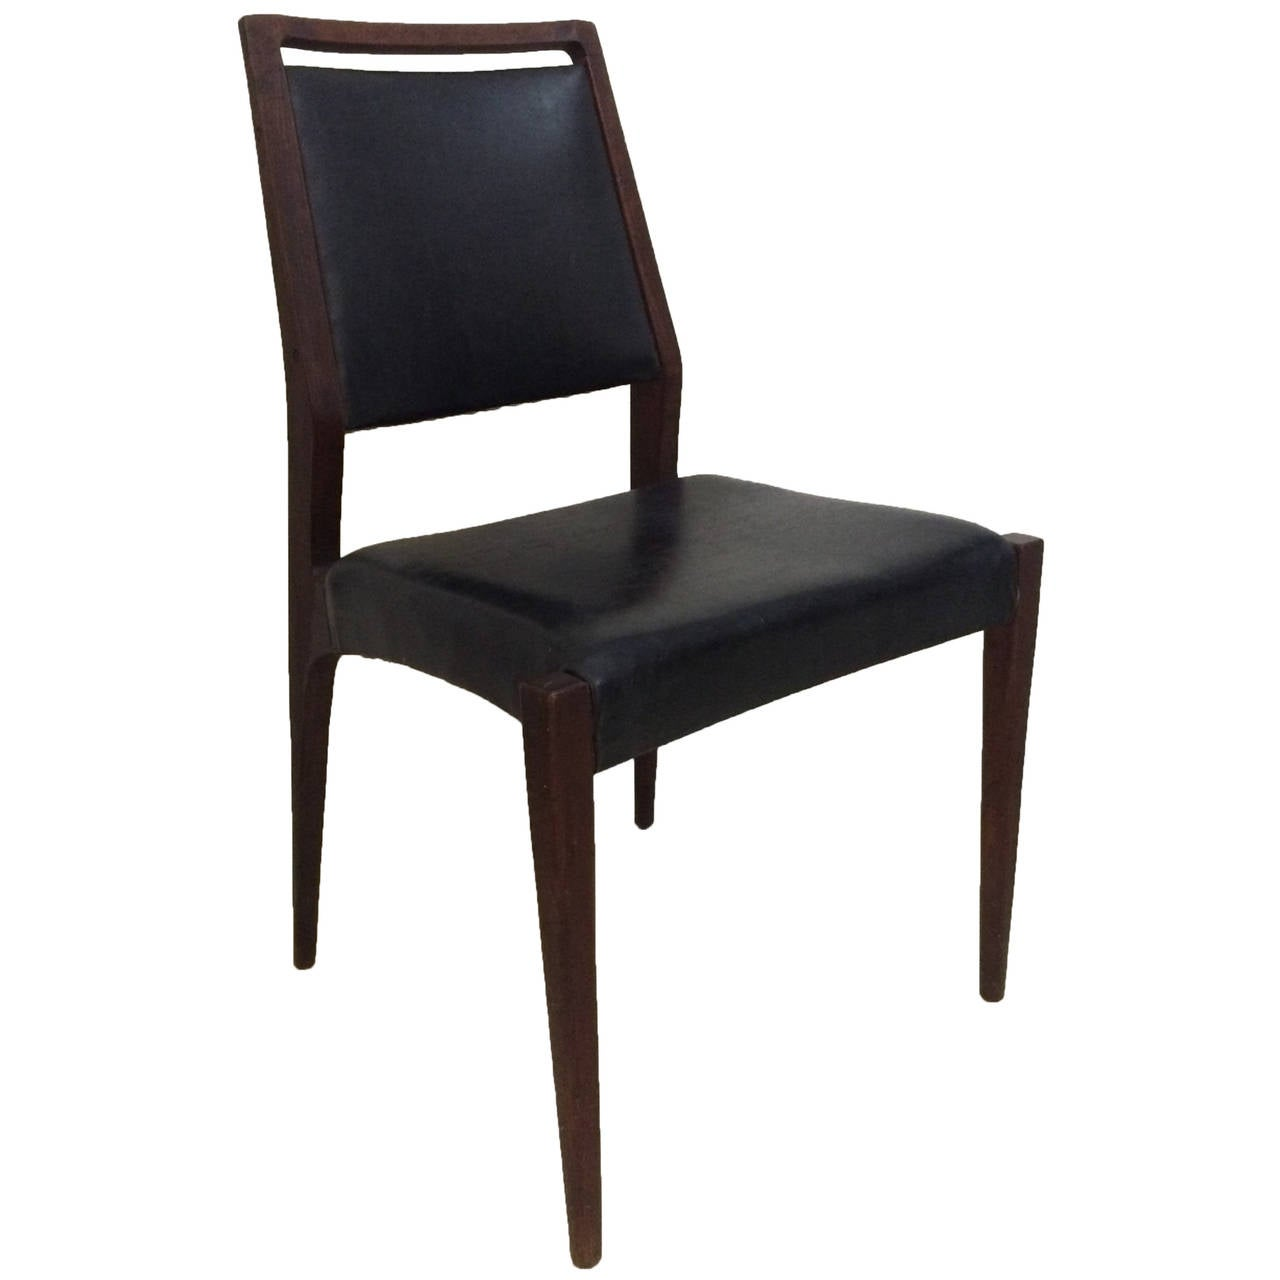 1950s italian modernist chair in the style of gio ponti at for 1950s chair styles